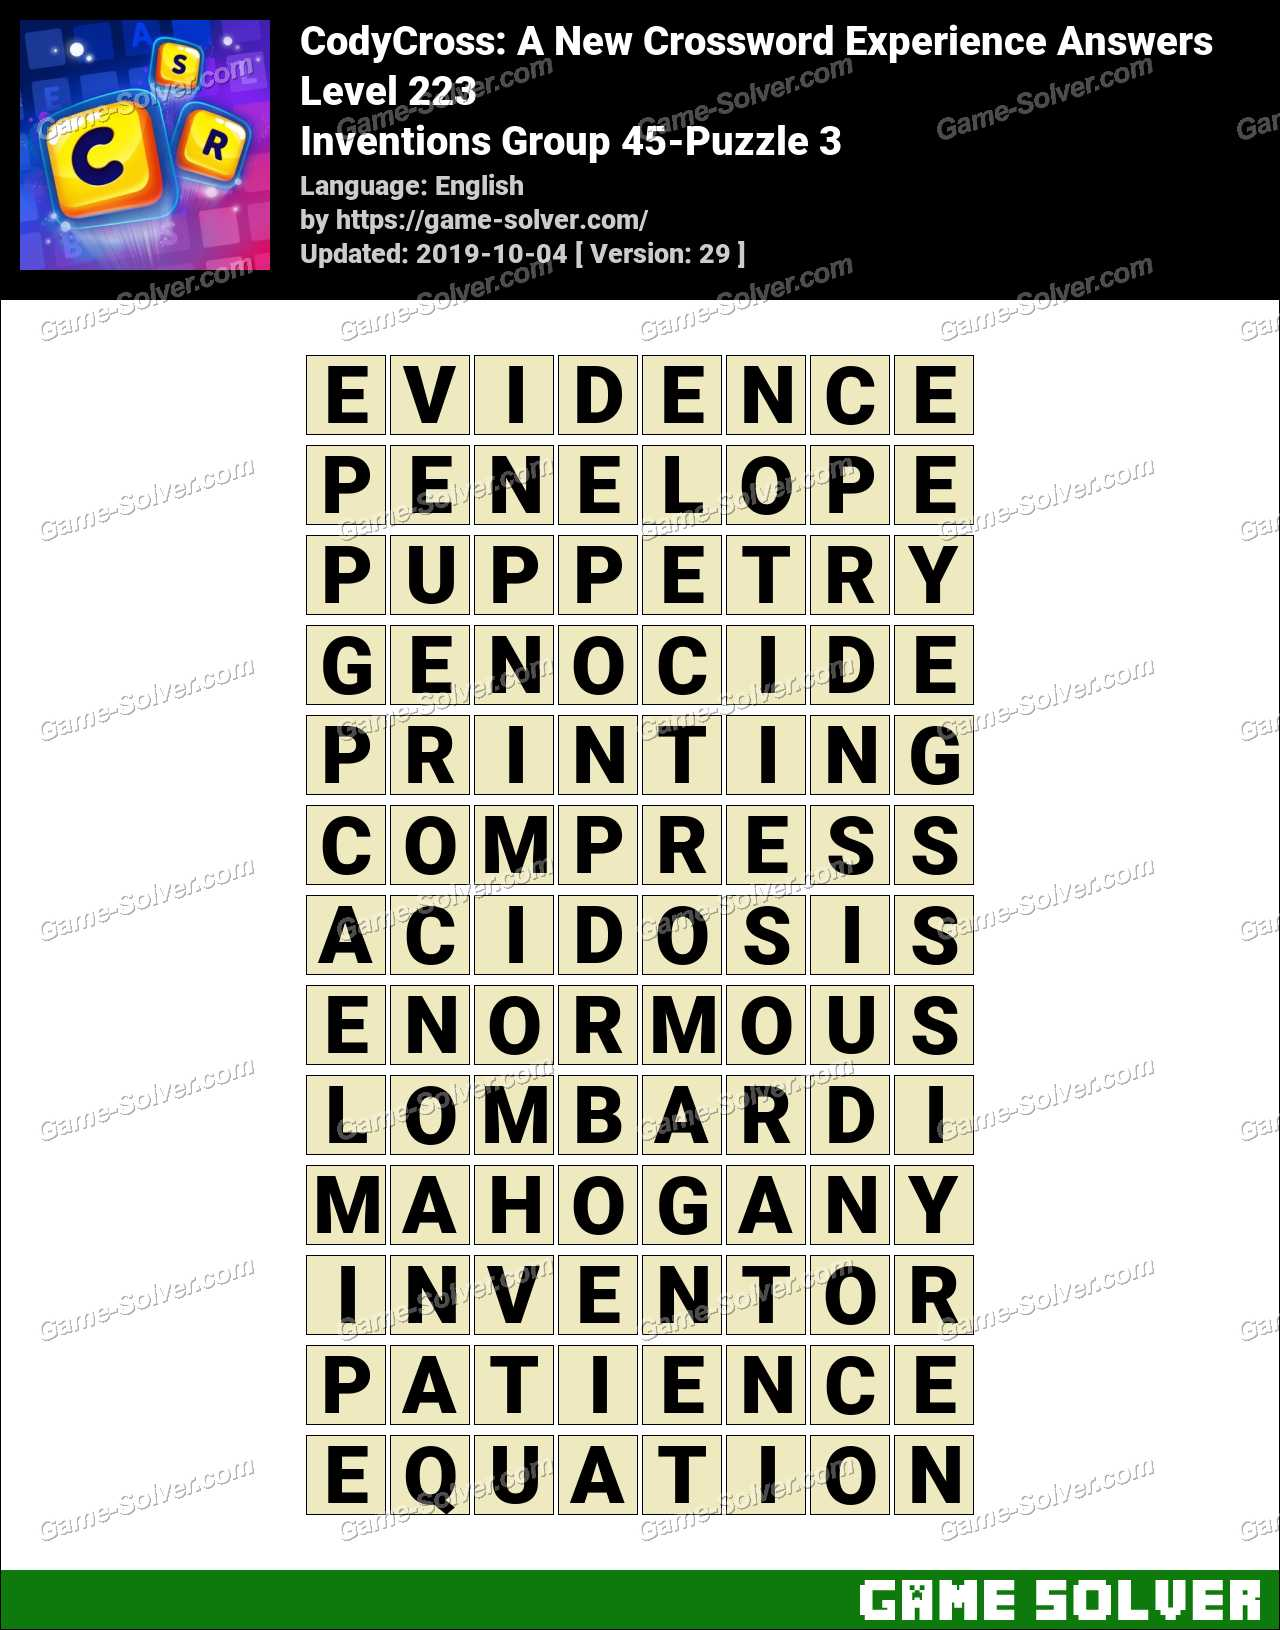 CodyCross Inventions Group 45-Puzzle 3 Answers